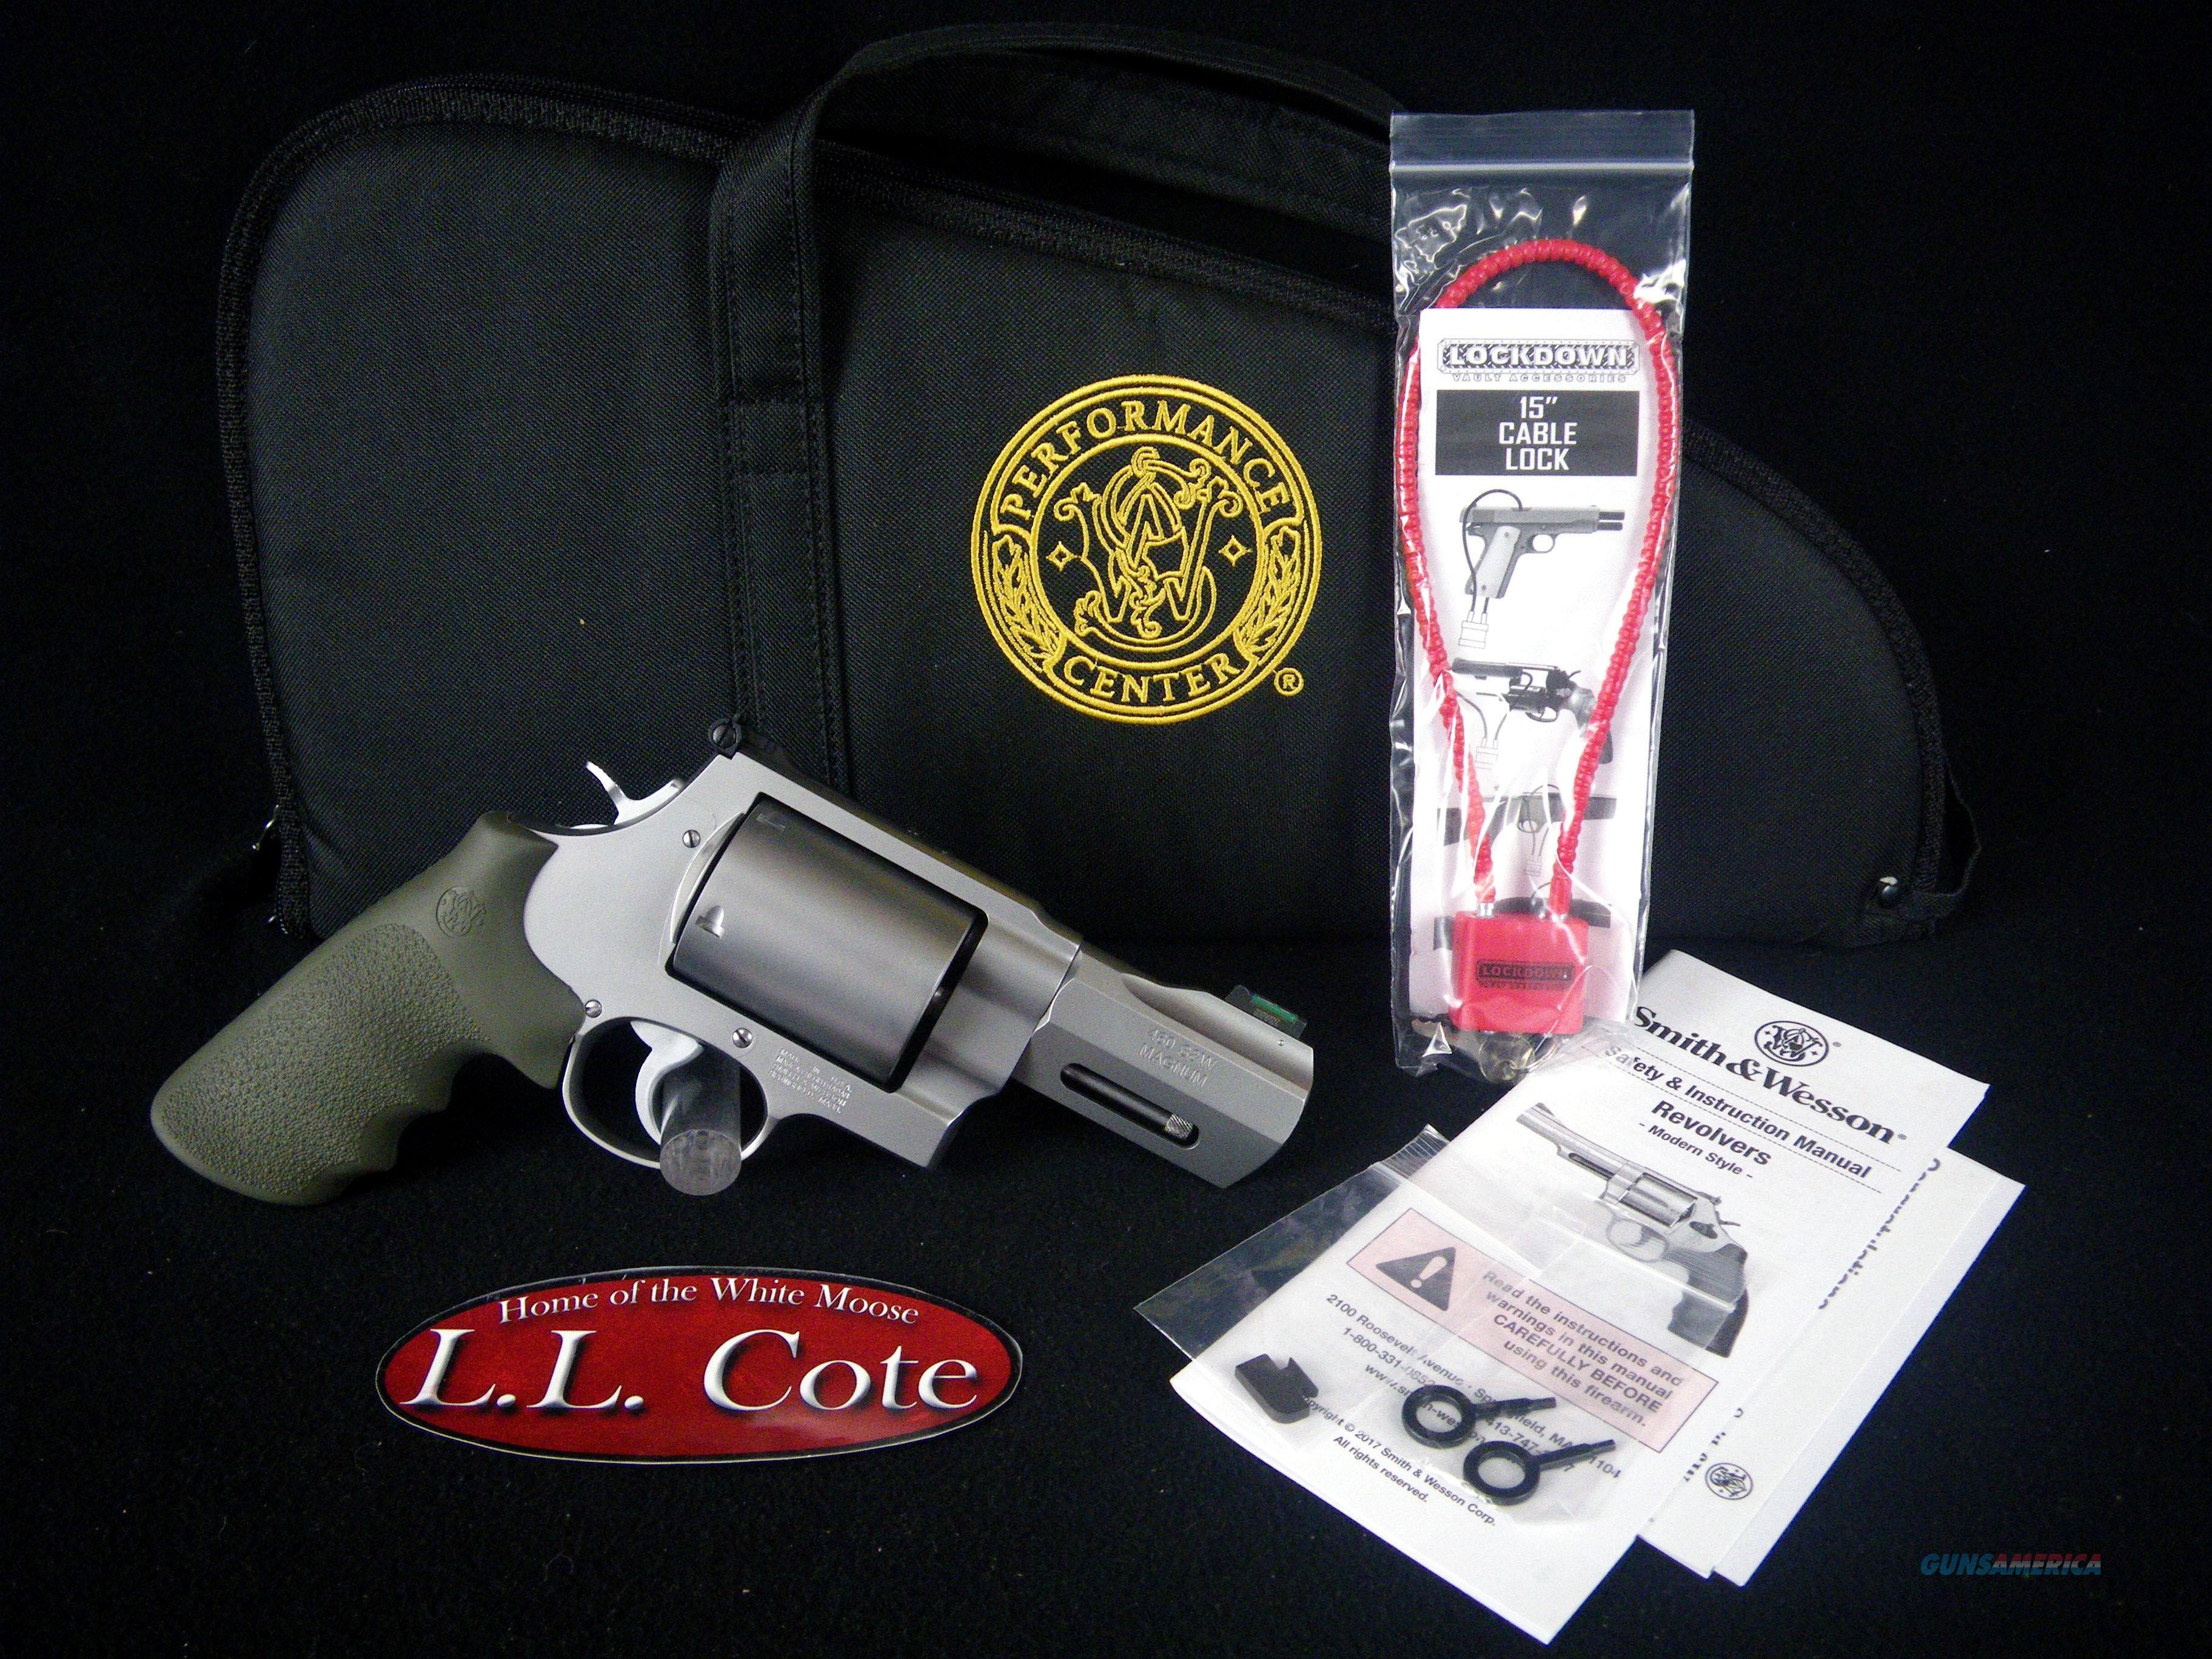 "Smith & Wesson Perf Ctr Model 460XVR 3.5"" NEW 170350  Guns > Pistols > Smith & Wesson Revolvers > Performance Center"